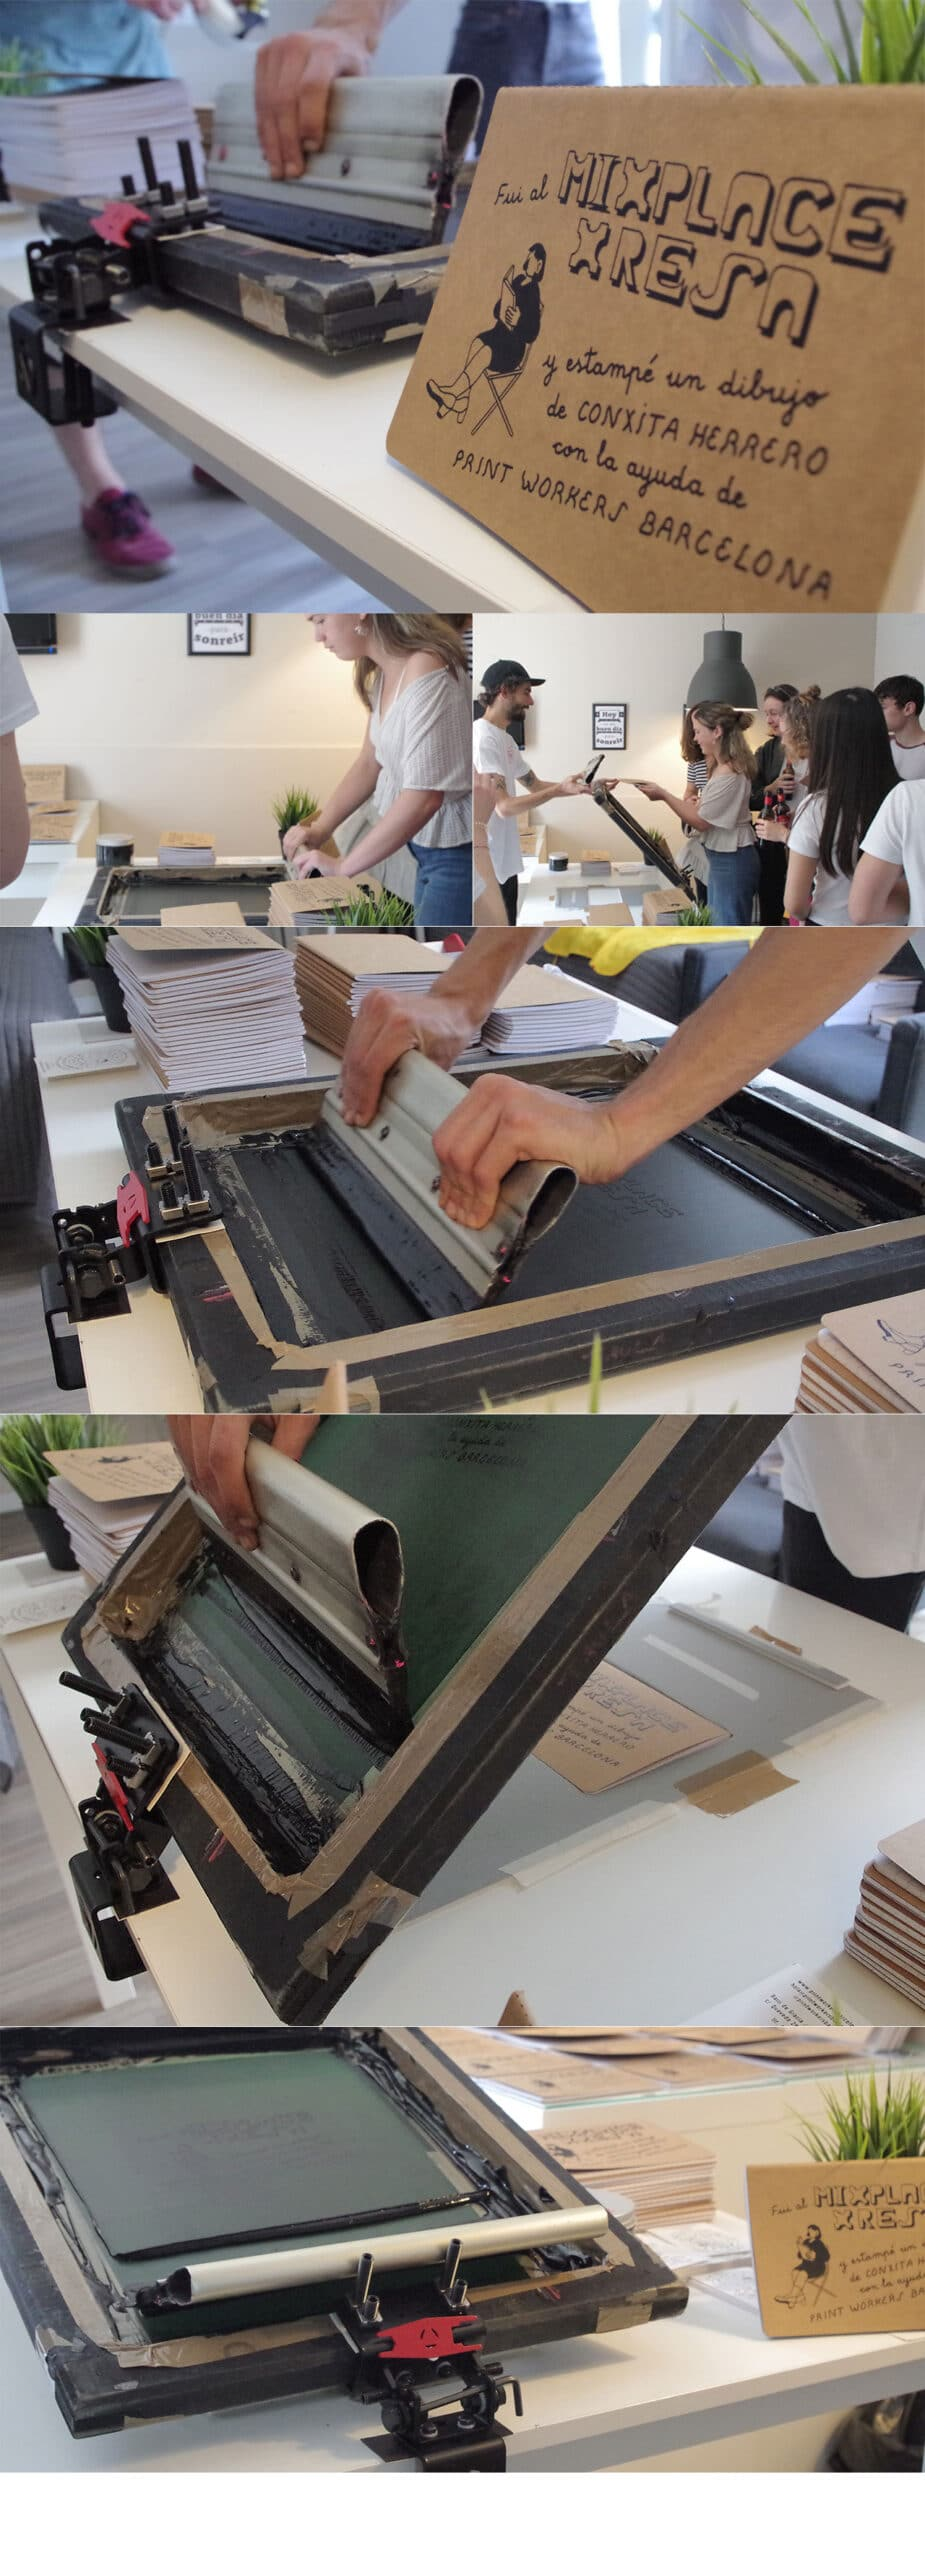 Workshop Print Workers Mixplace